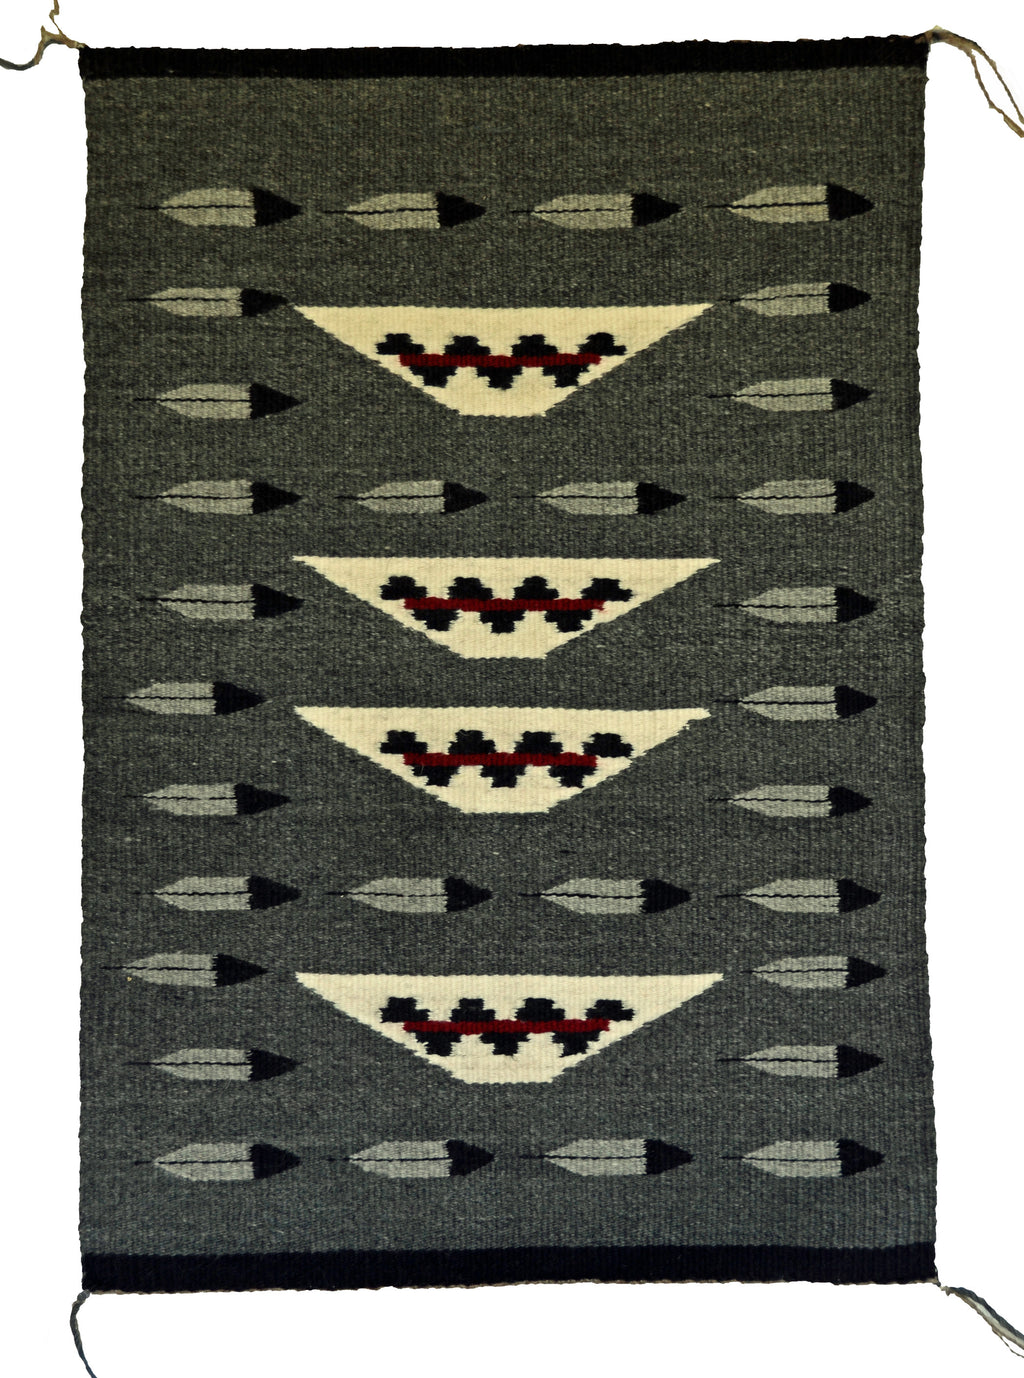 American Indian rug with Navajo wedding baskets and feathers